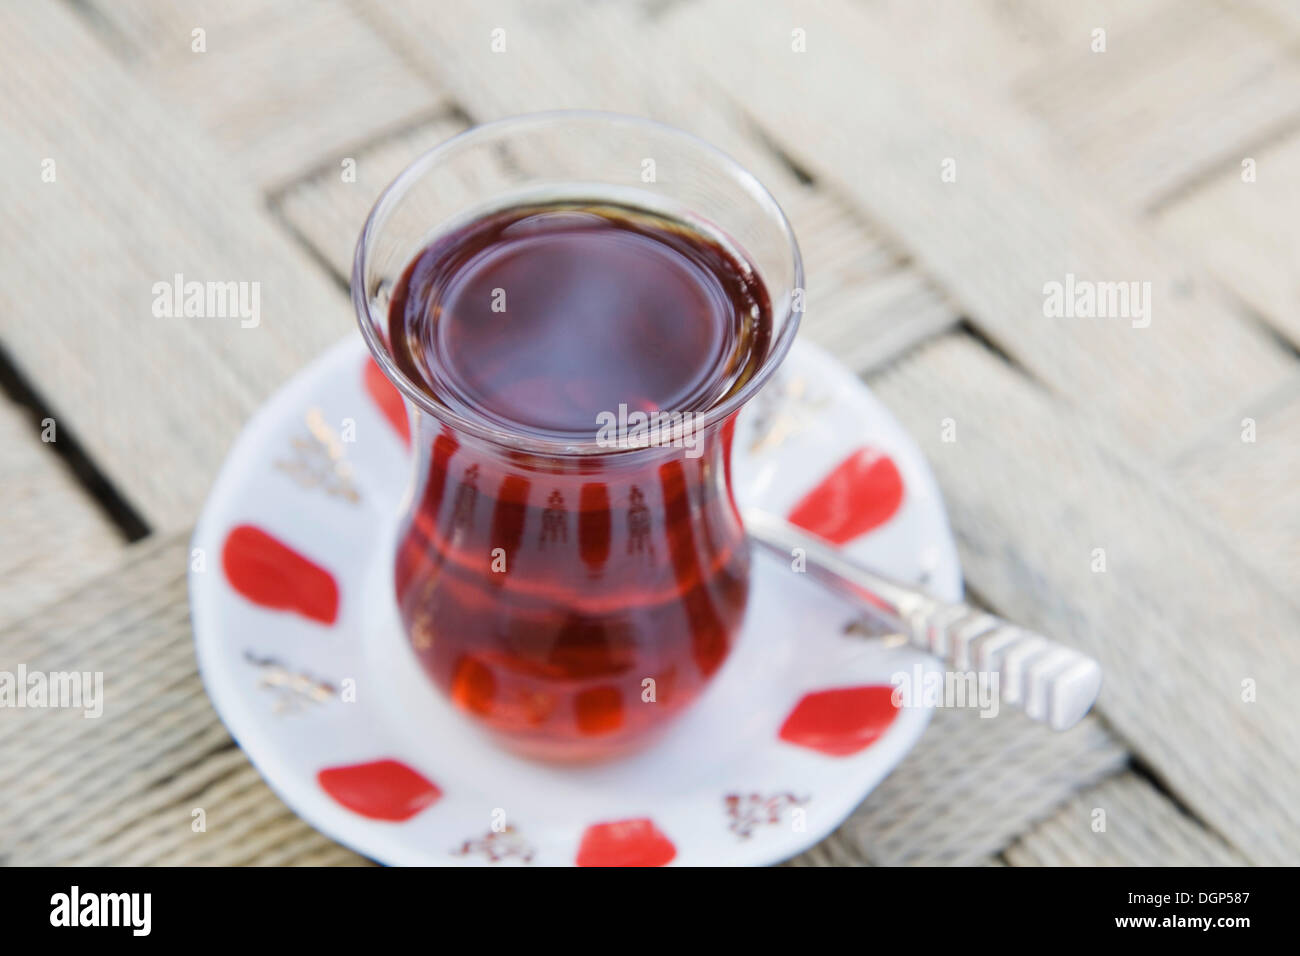 A glass of tea in the traditional Turkish manner, Istanbul, Turkey - Stock Image